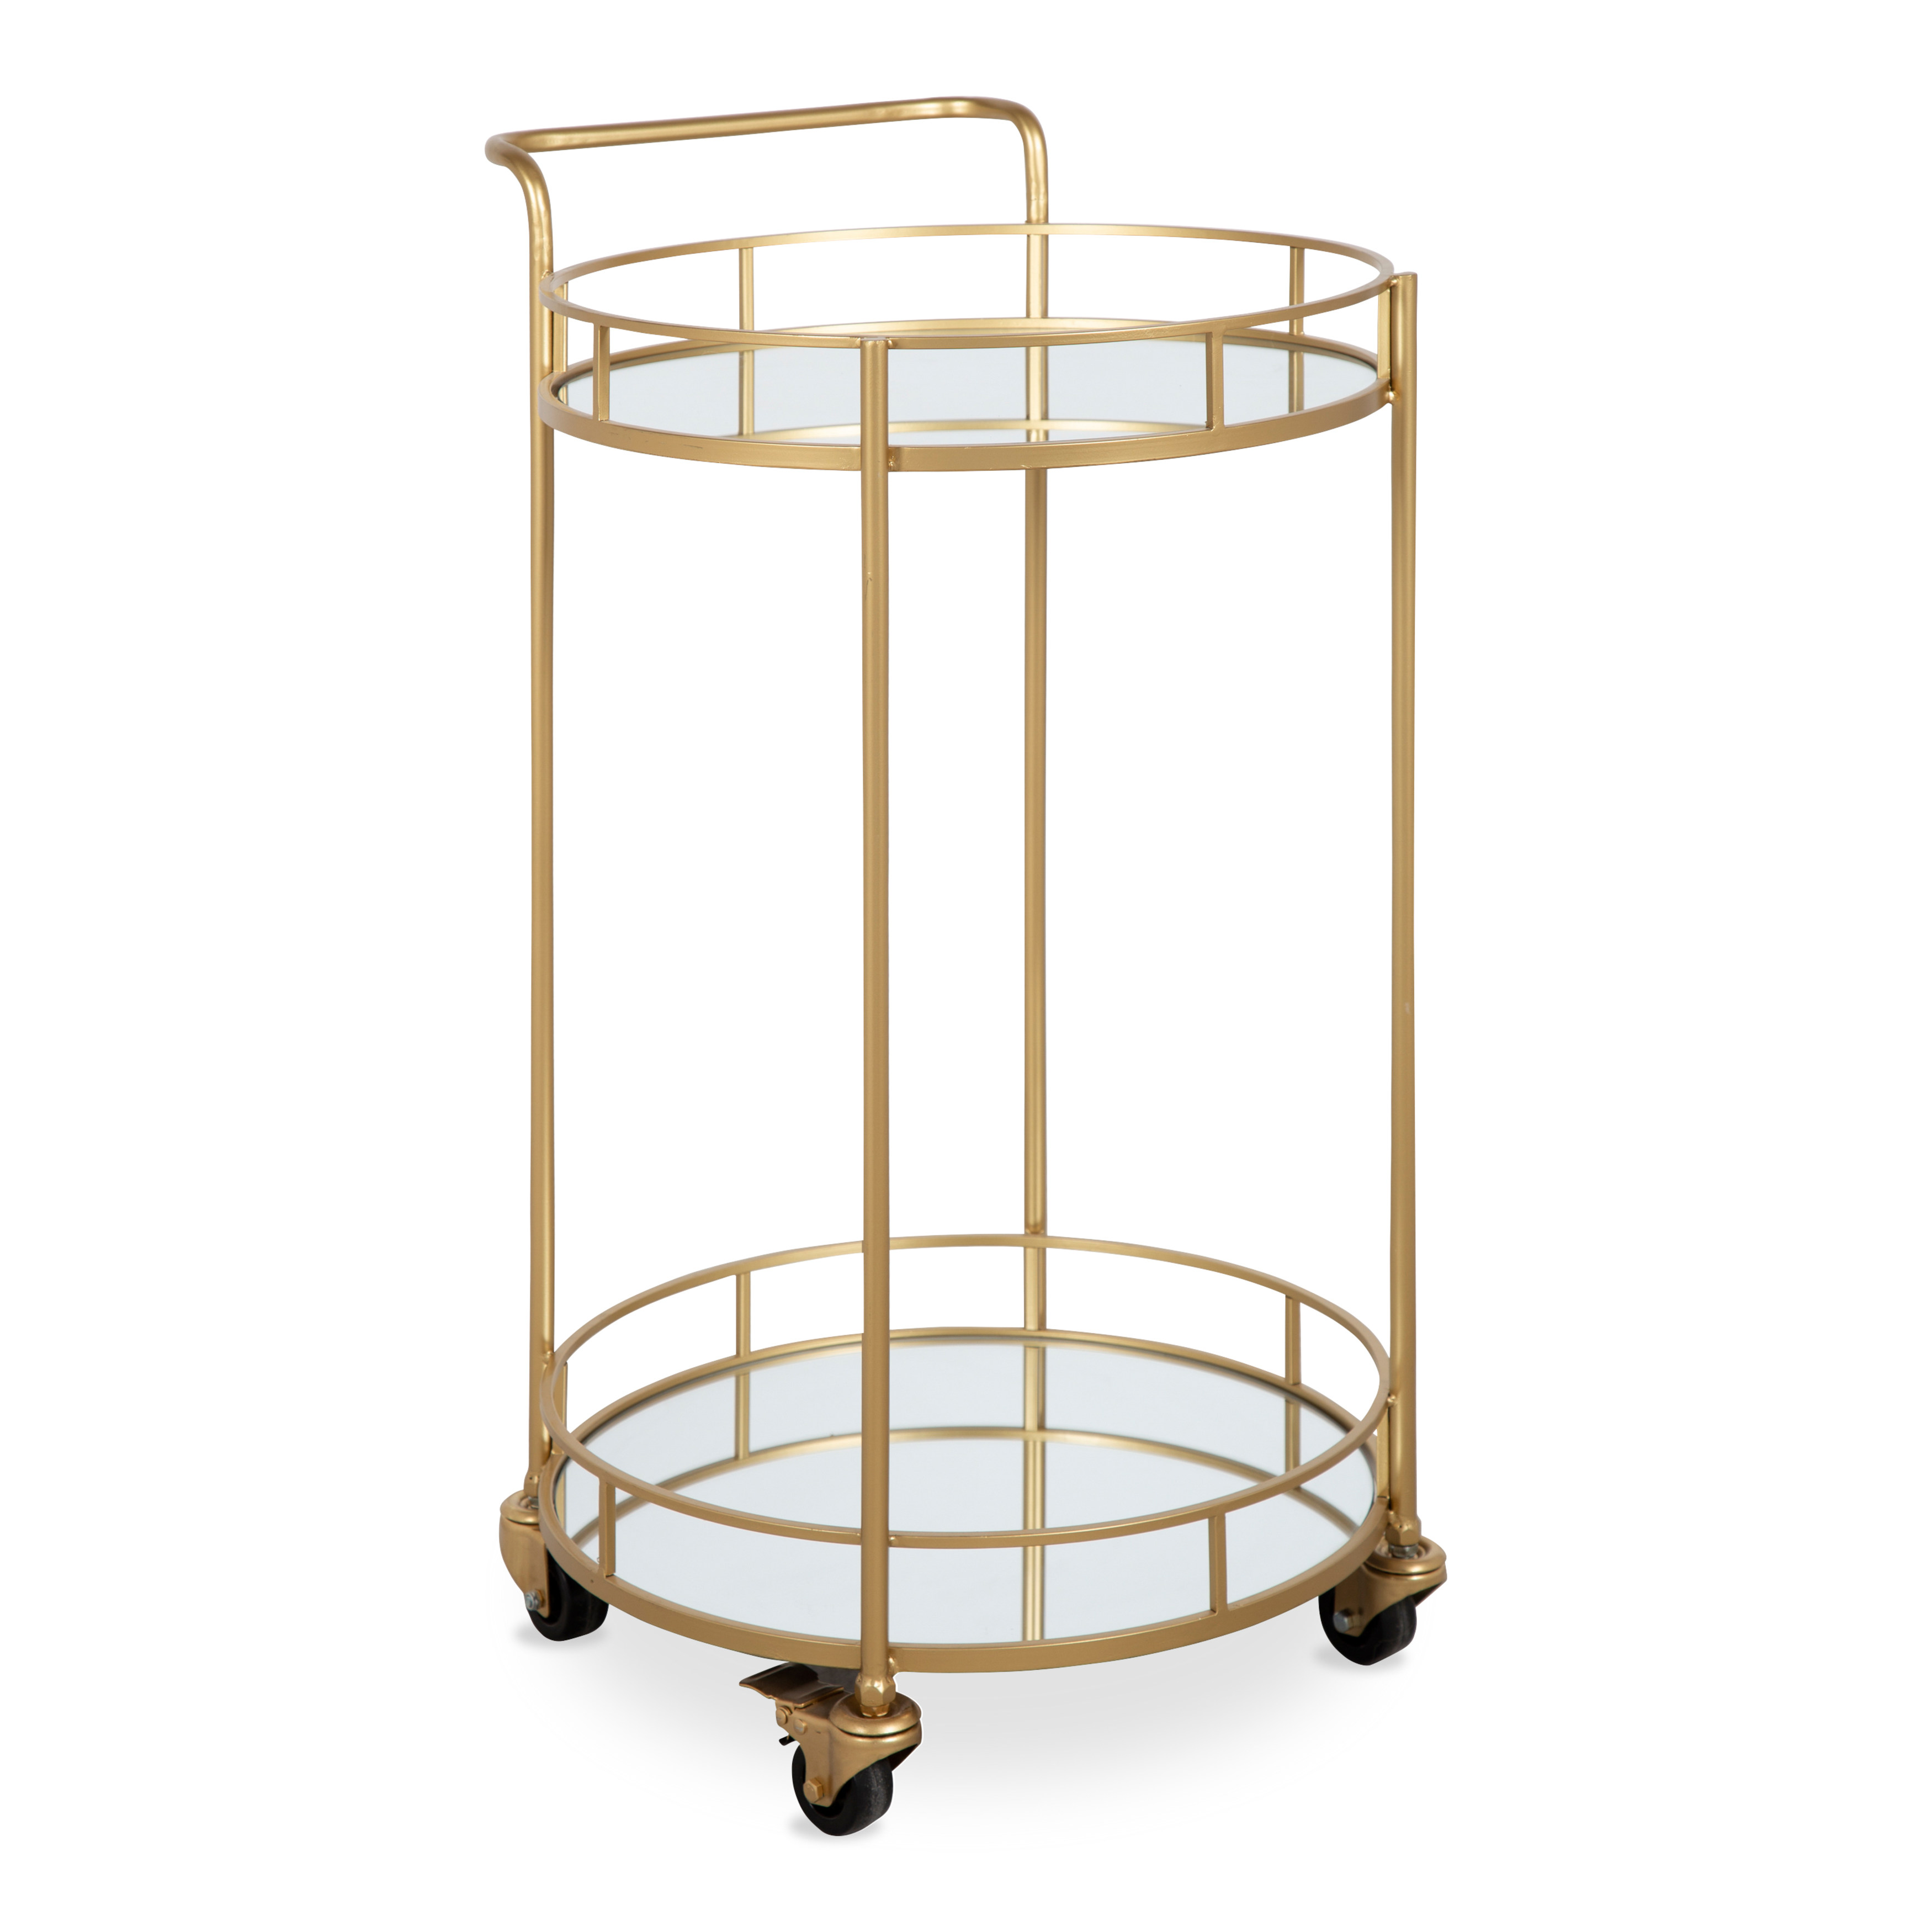 Kate and Laurel Deveaux 2 Shelf Modern-Glam Round Metal and Mirror Rolling Multi-Purpose Serving Bar Kitchen Tray Cart, Gold